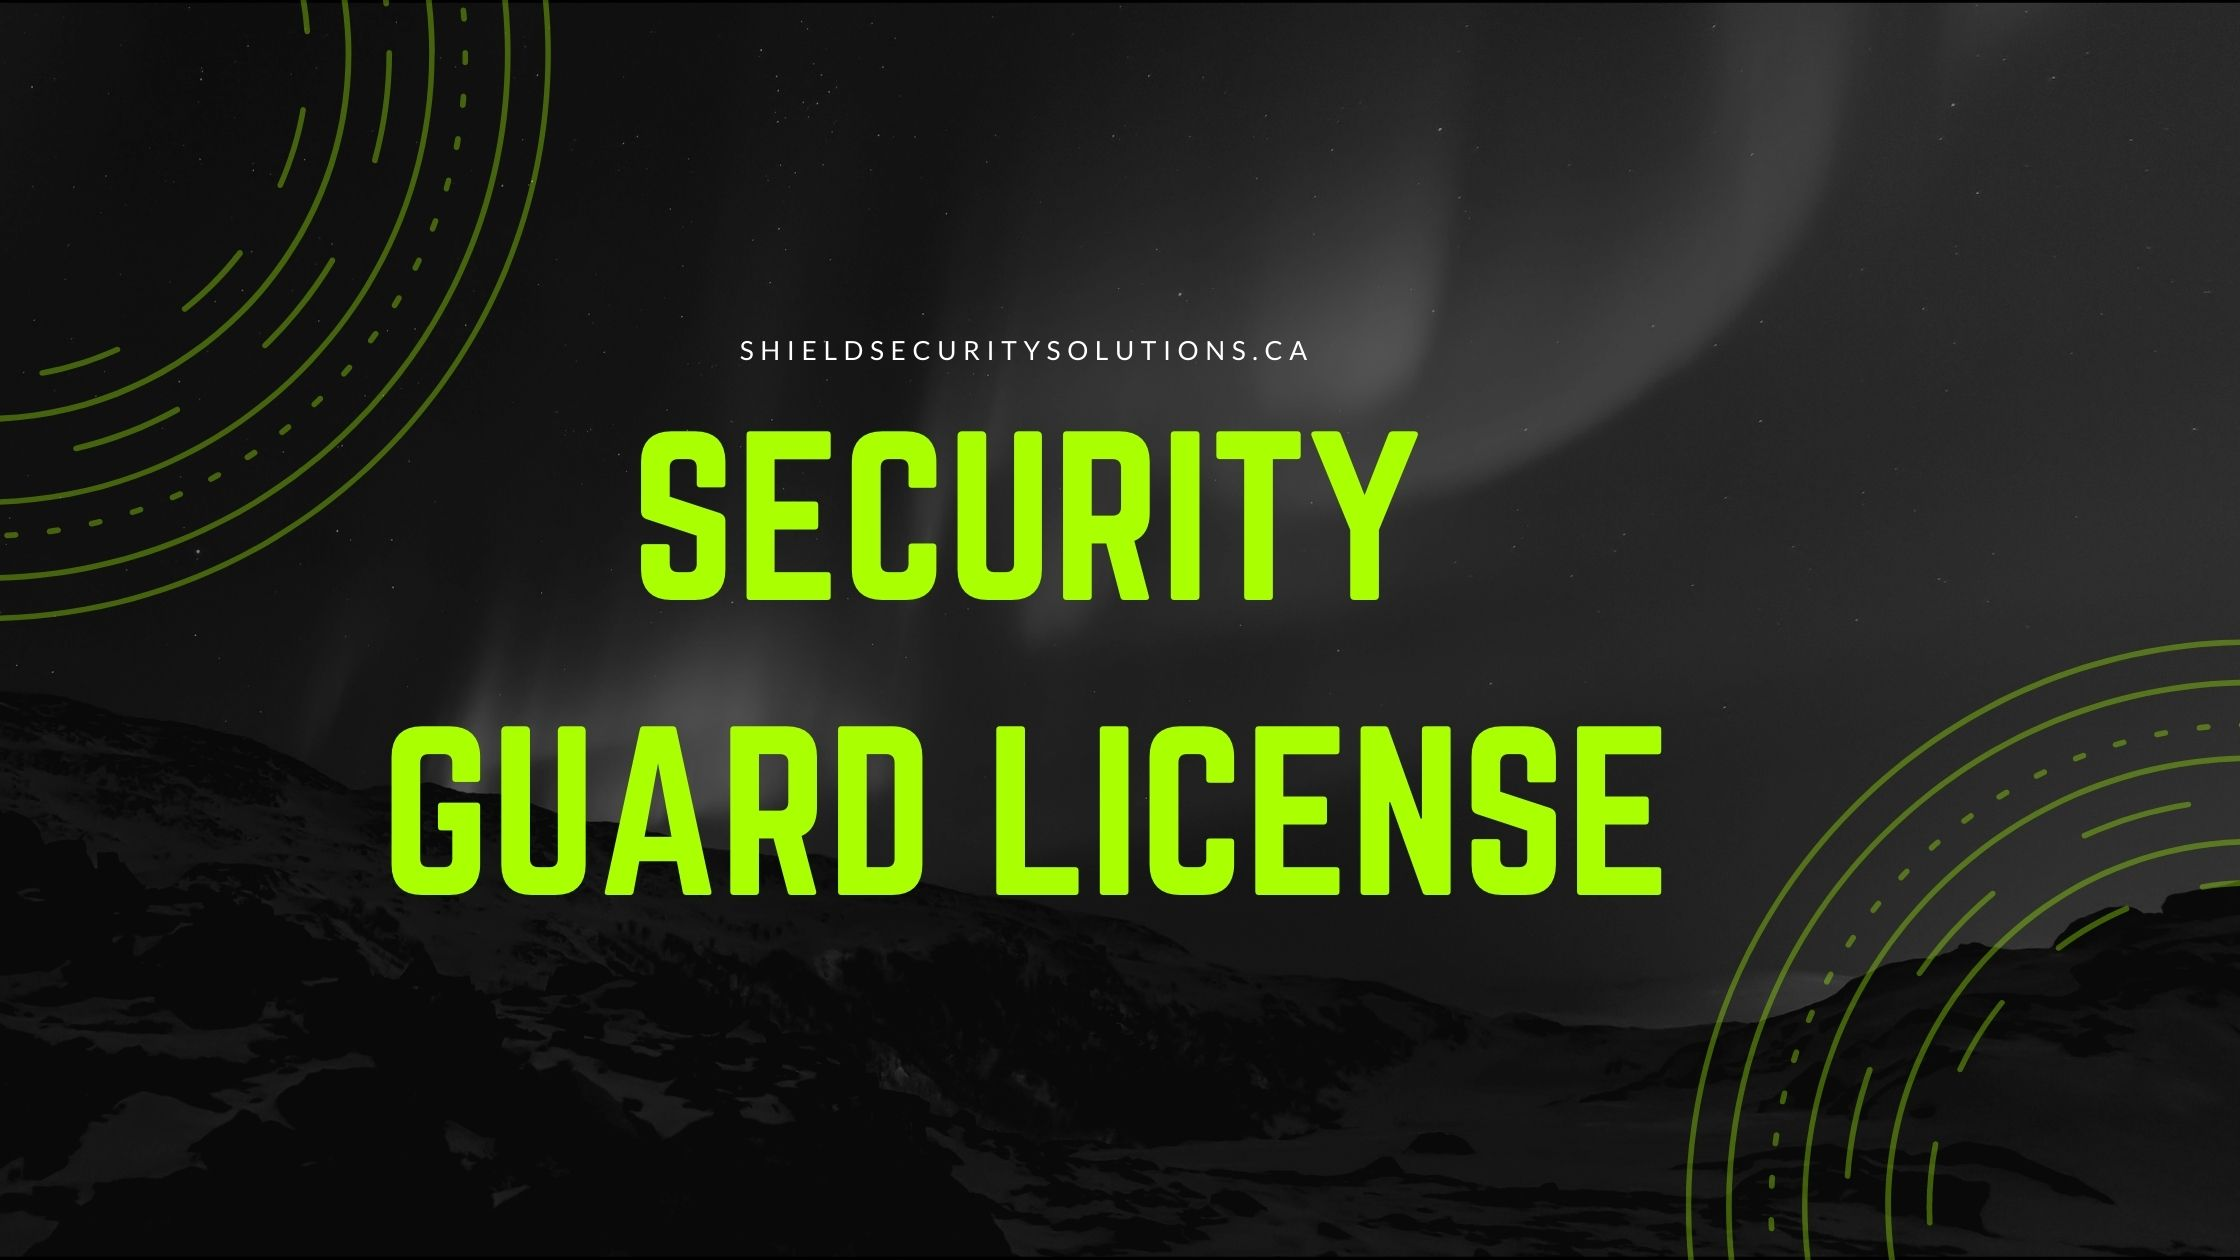 Obtaining a Security Guard License